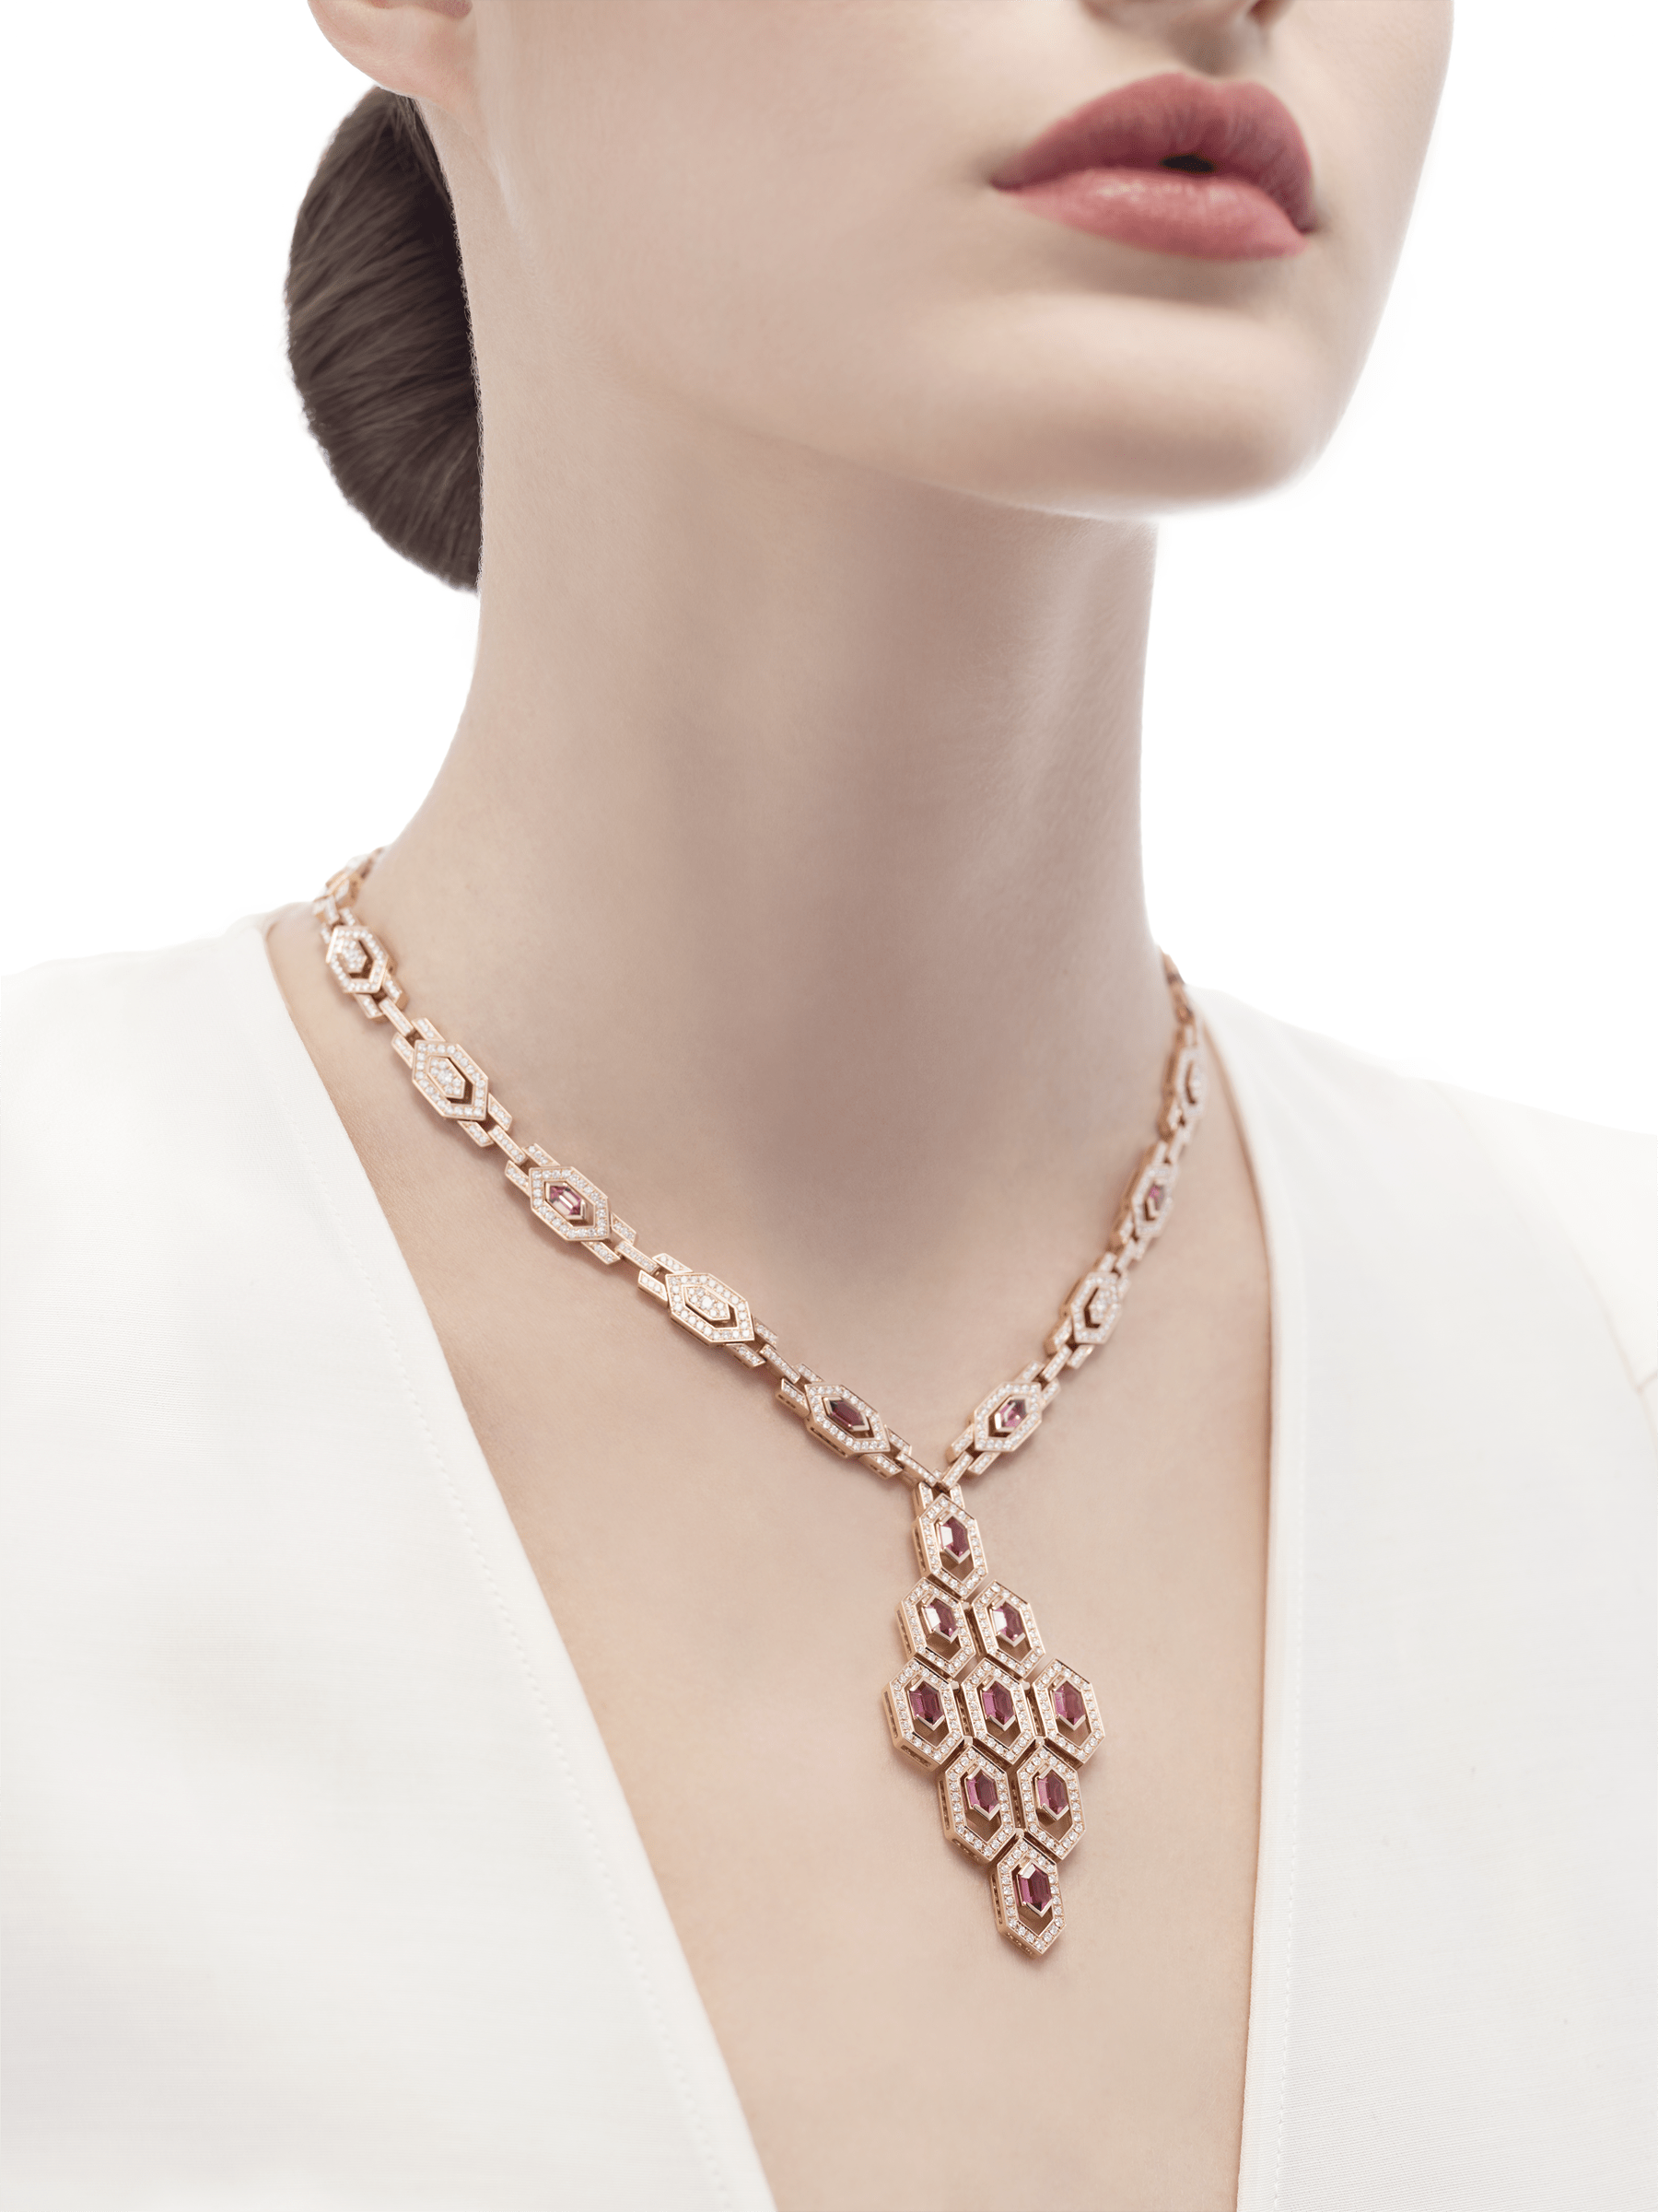 Serpenti Necklace in 18 kt pink gold with rubellite (5.25 ct) and pavè diamonds (7.37 ct) 353845 image 2